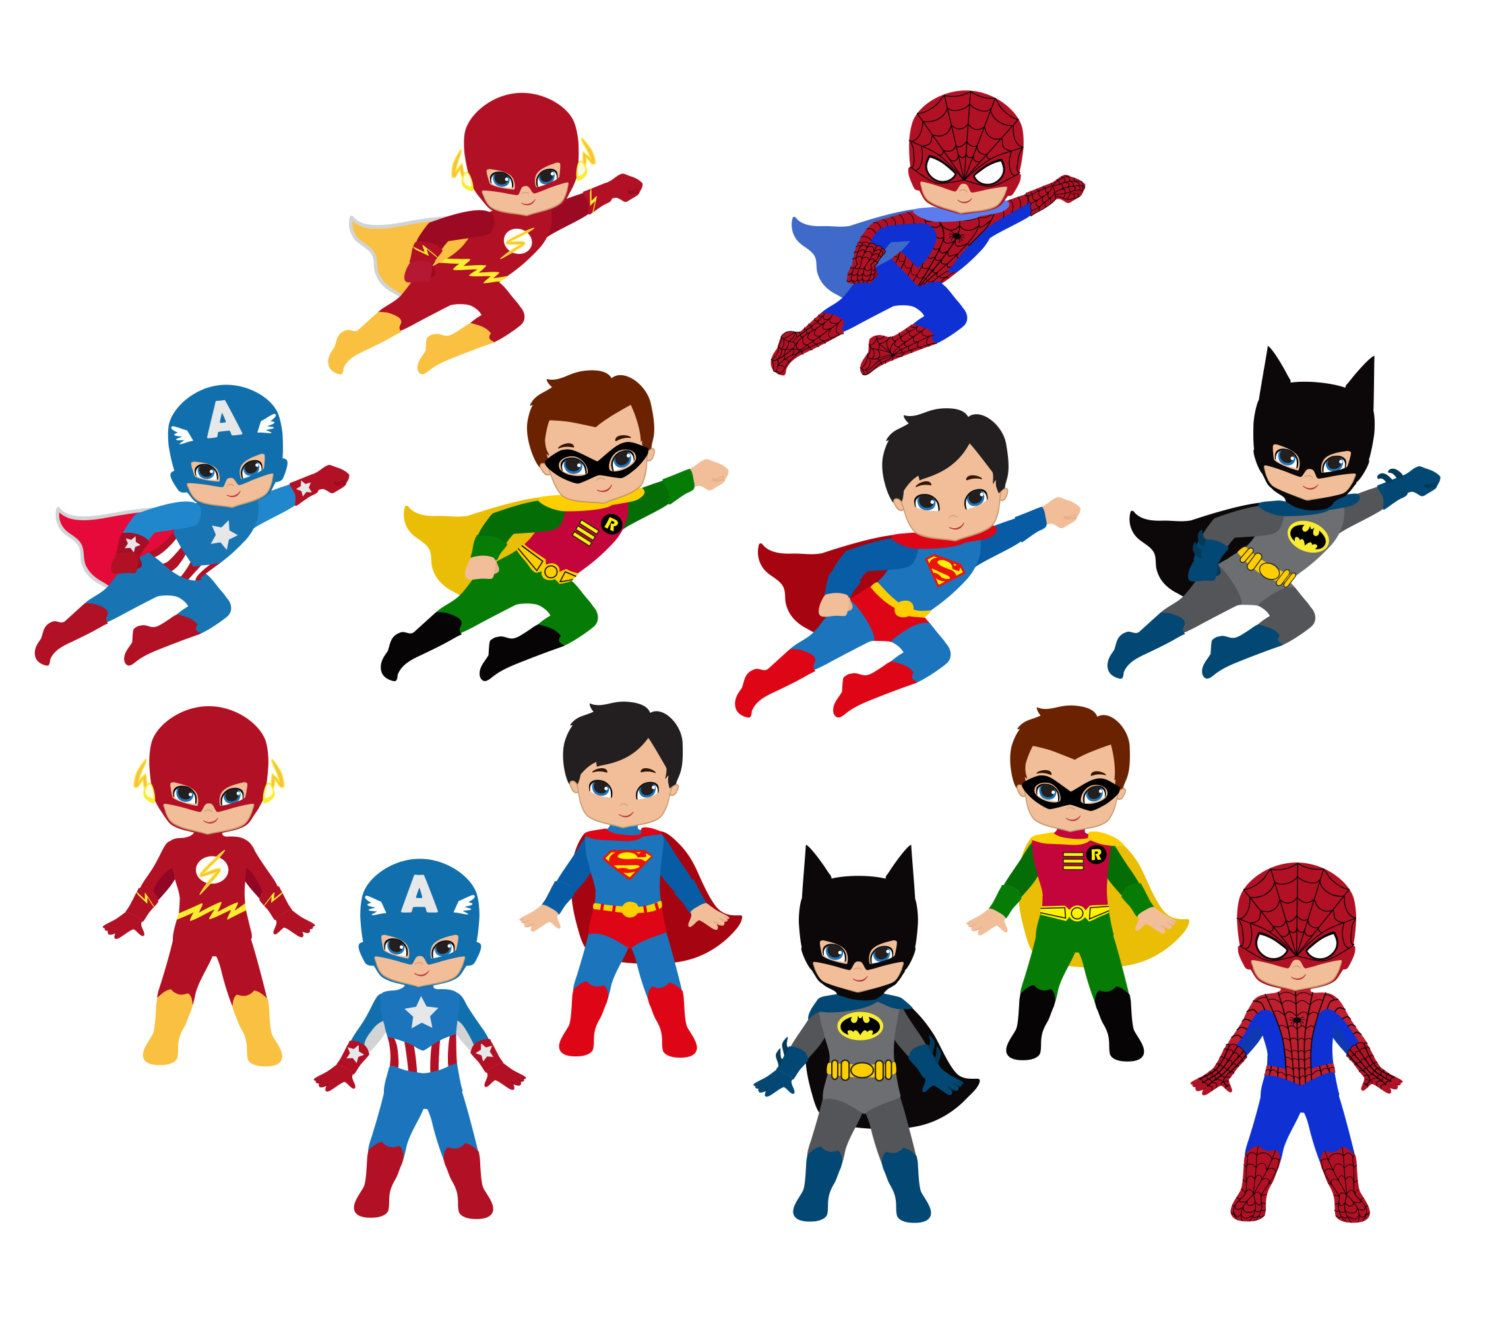 free superhero clipart fonts clipart freebies pinterest rh pinterest com superhero clip art free flash gordon superhero clipart free